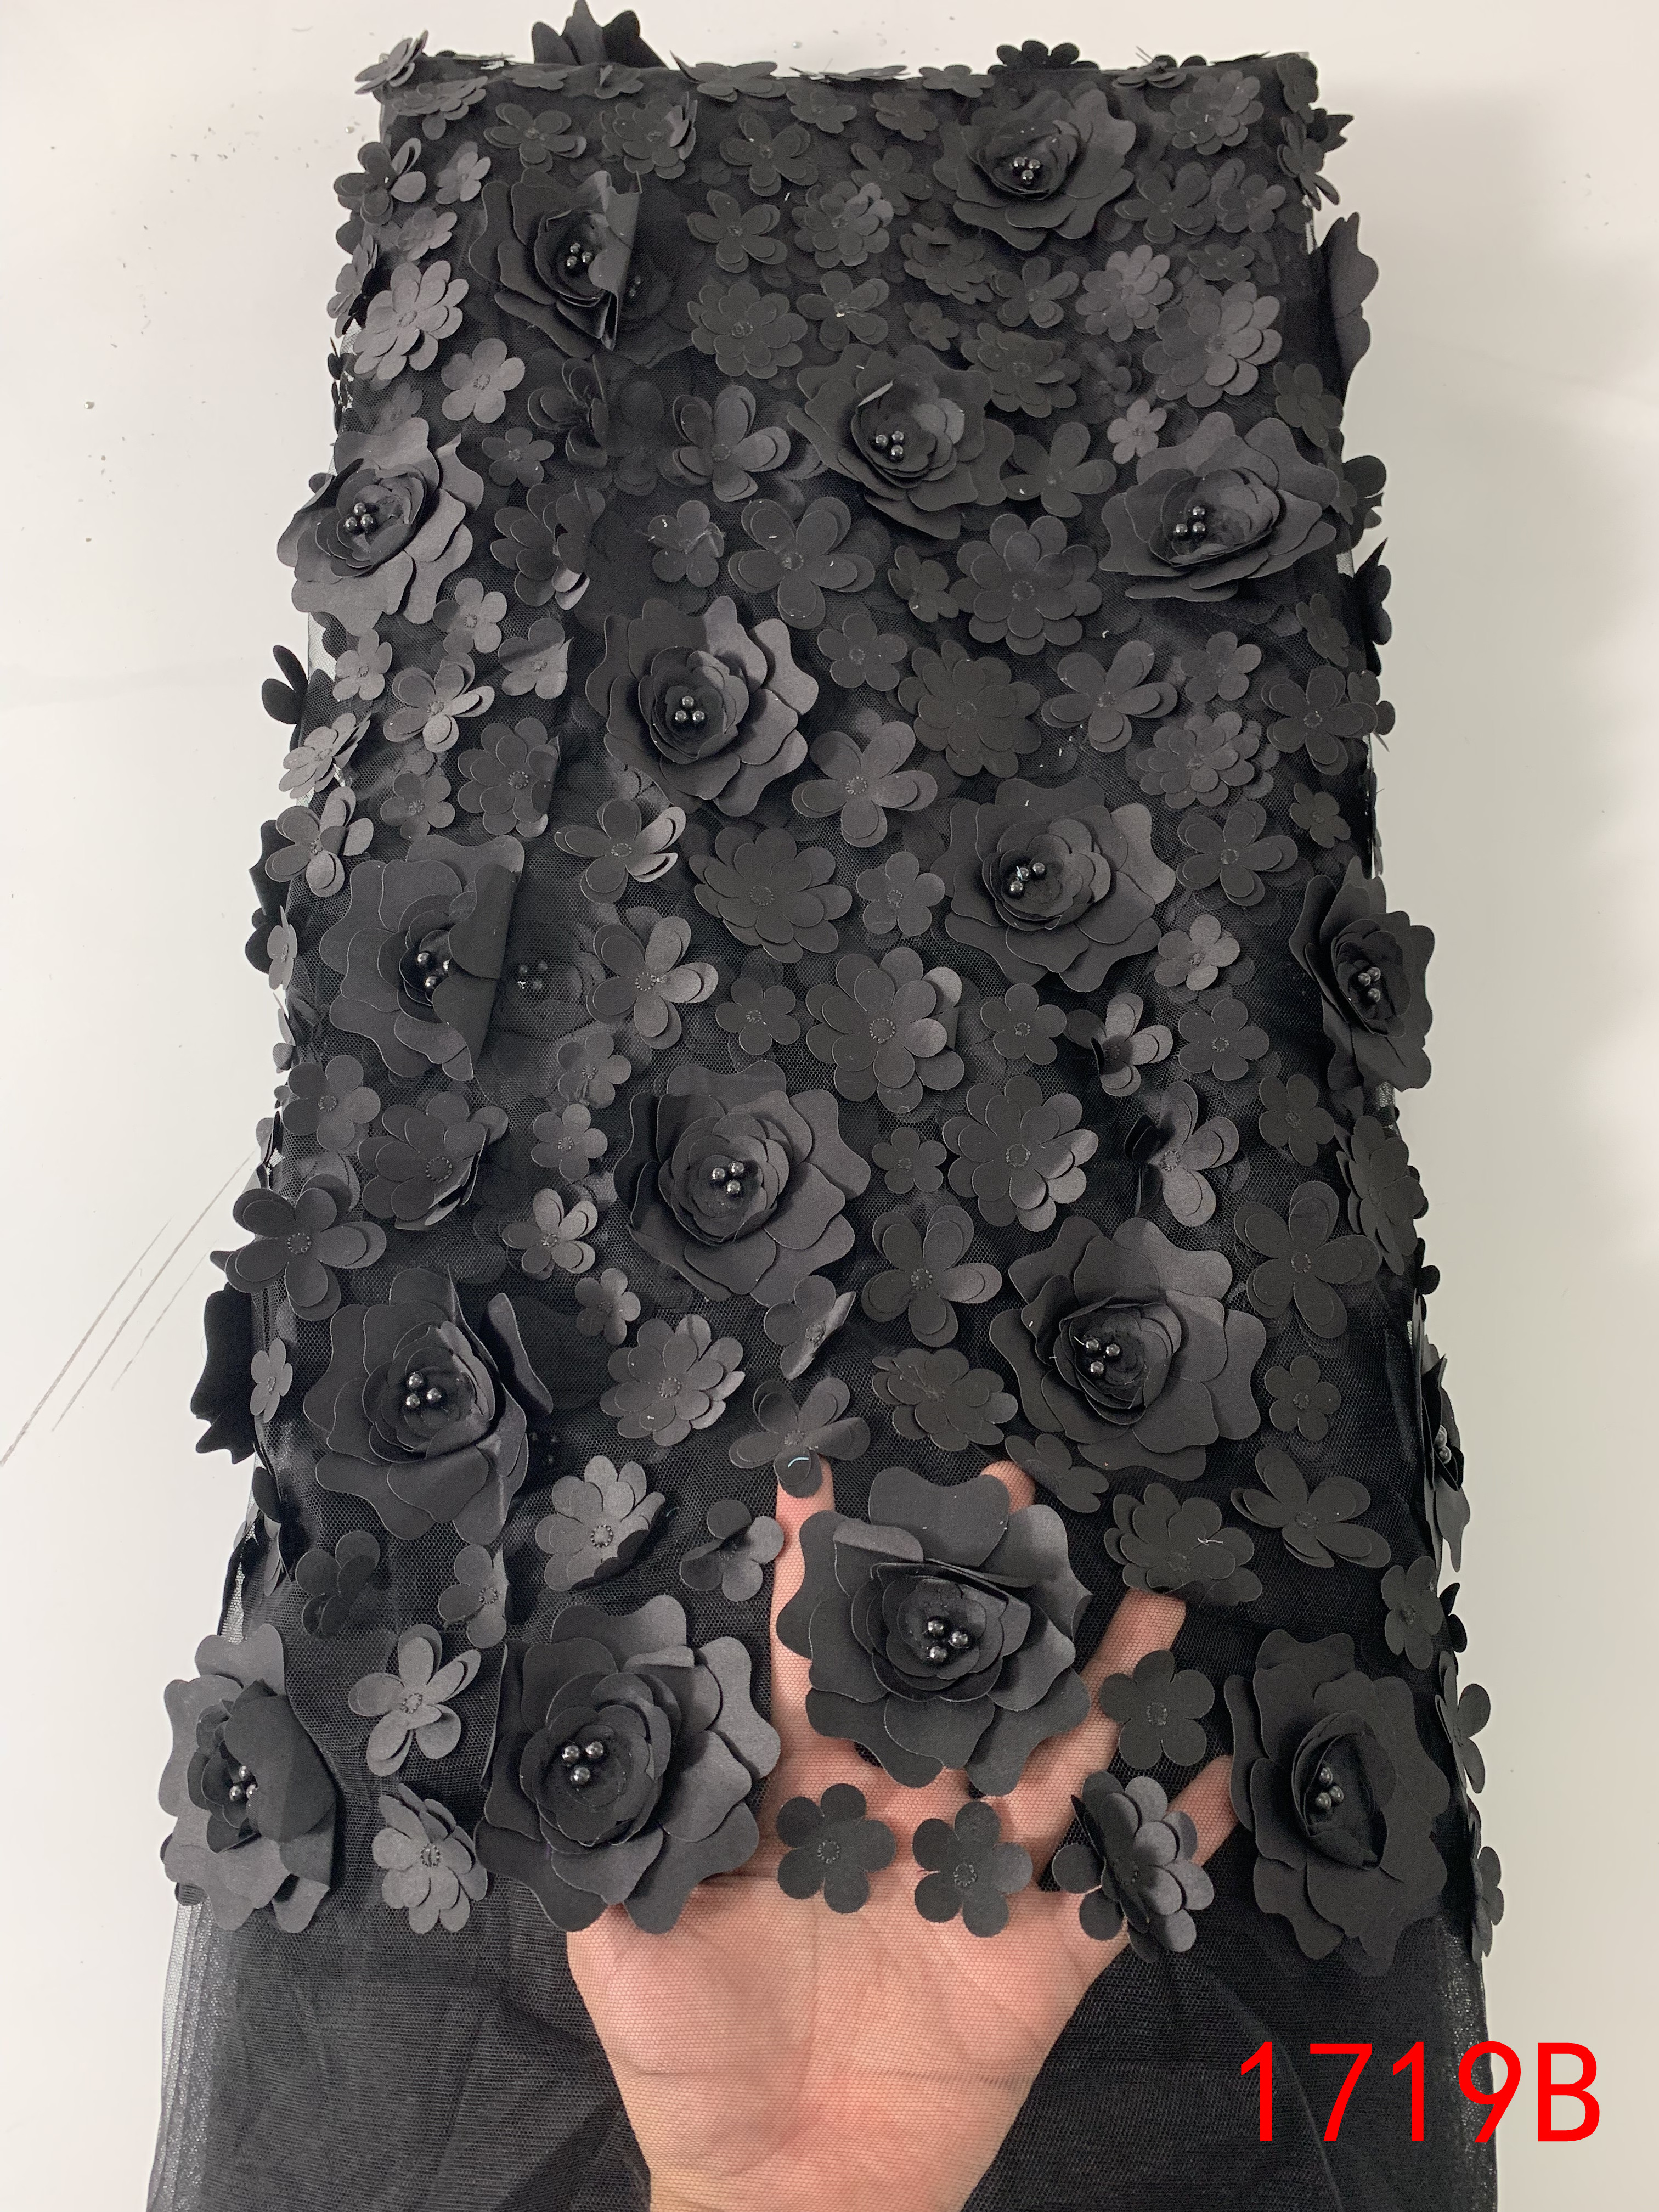 2019 3D Lace Fabric High Quality African Lace Fabric French Applique Tulle Net With Beads For Party Dresses Black KS1719B